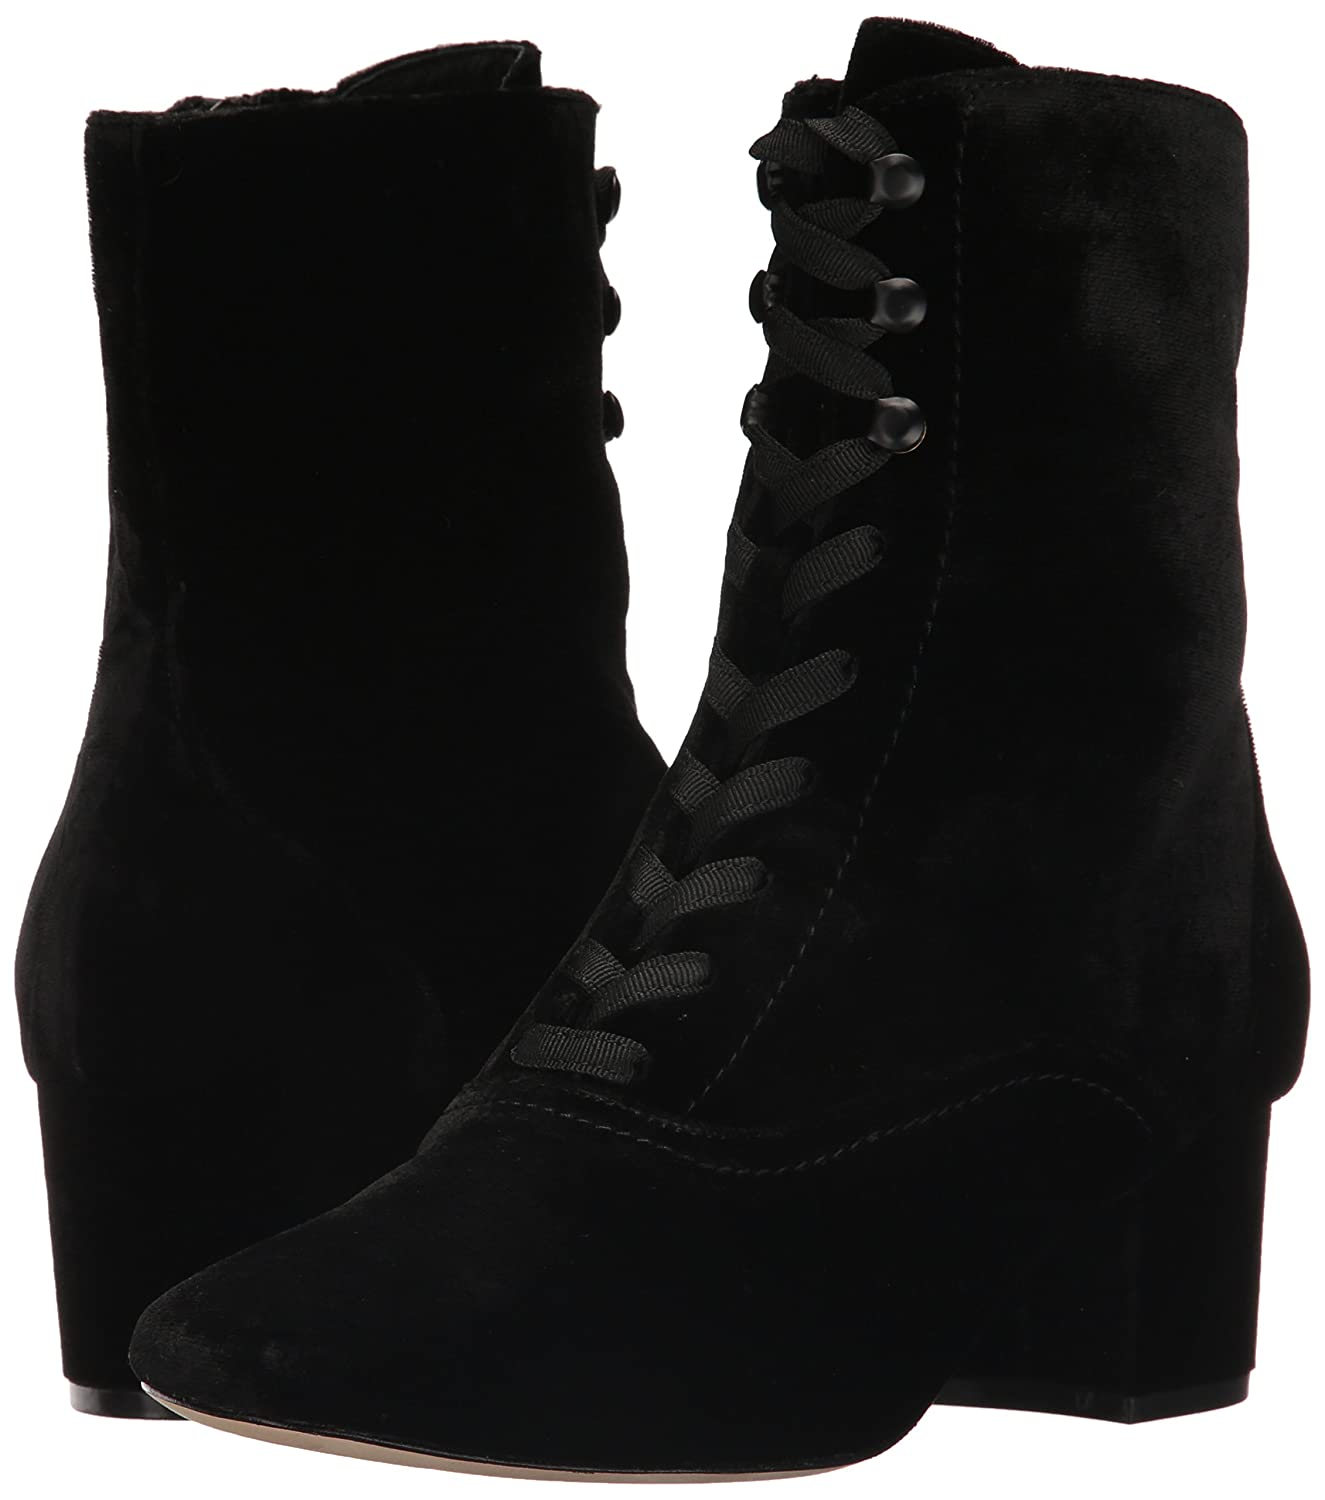 Joie Women's Yulia Fashion Boot (5.5 B072HN3F9S 35.5 M EU (5.5 Boot US)|Black ec4c25